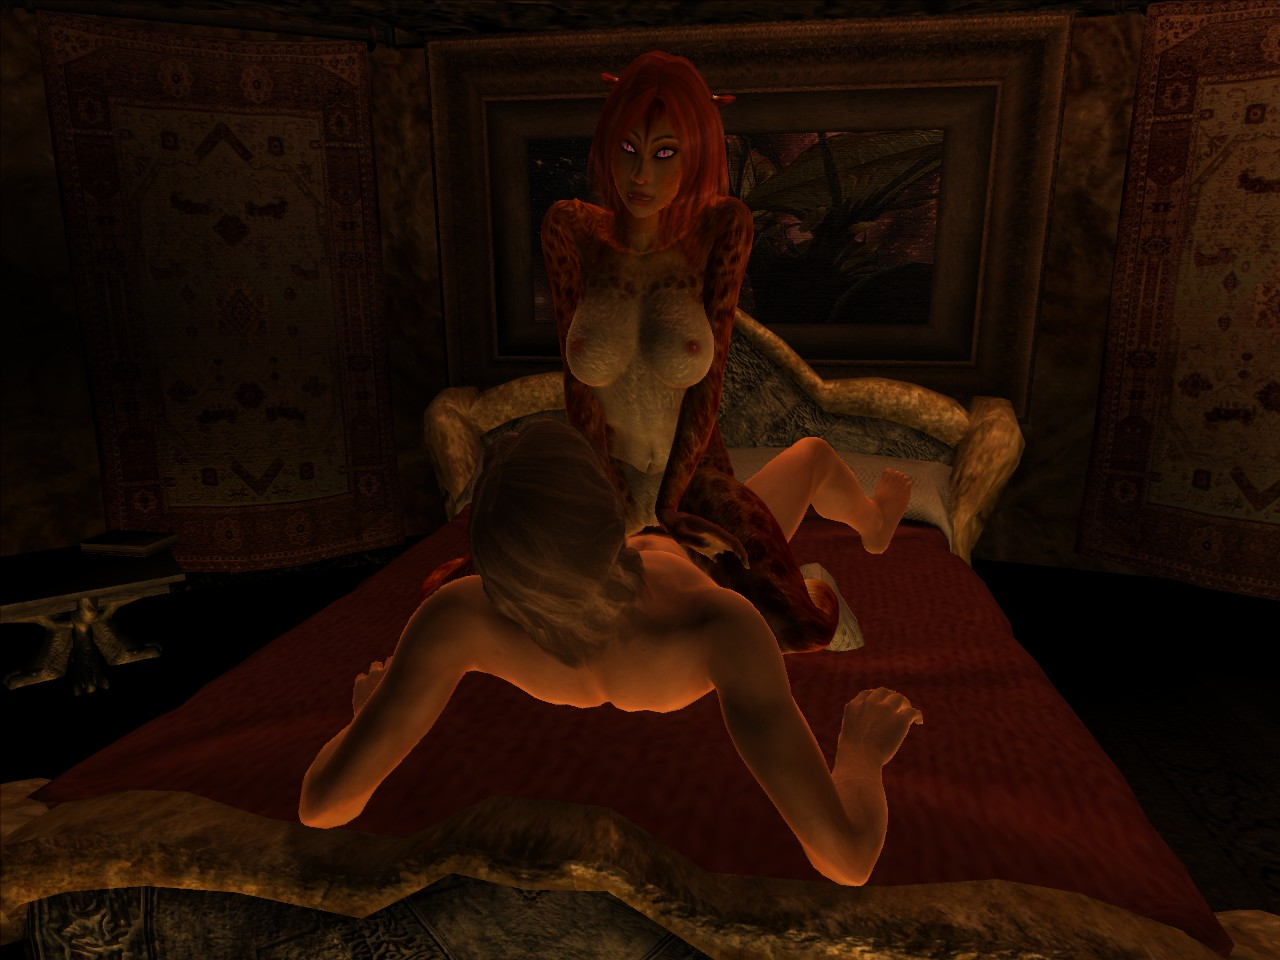 Oblivion nude screenshot erotic queen